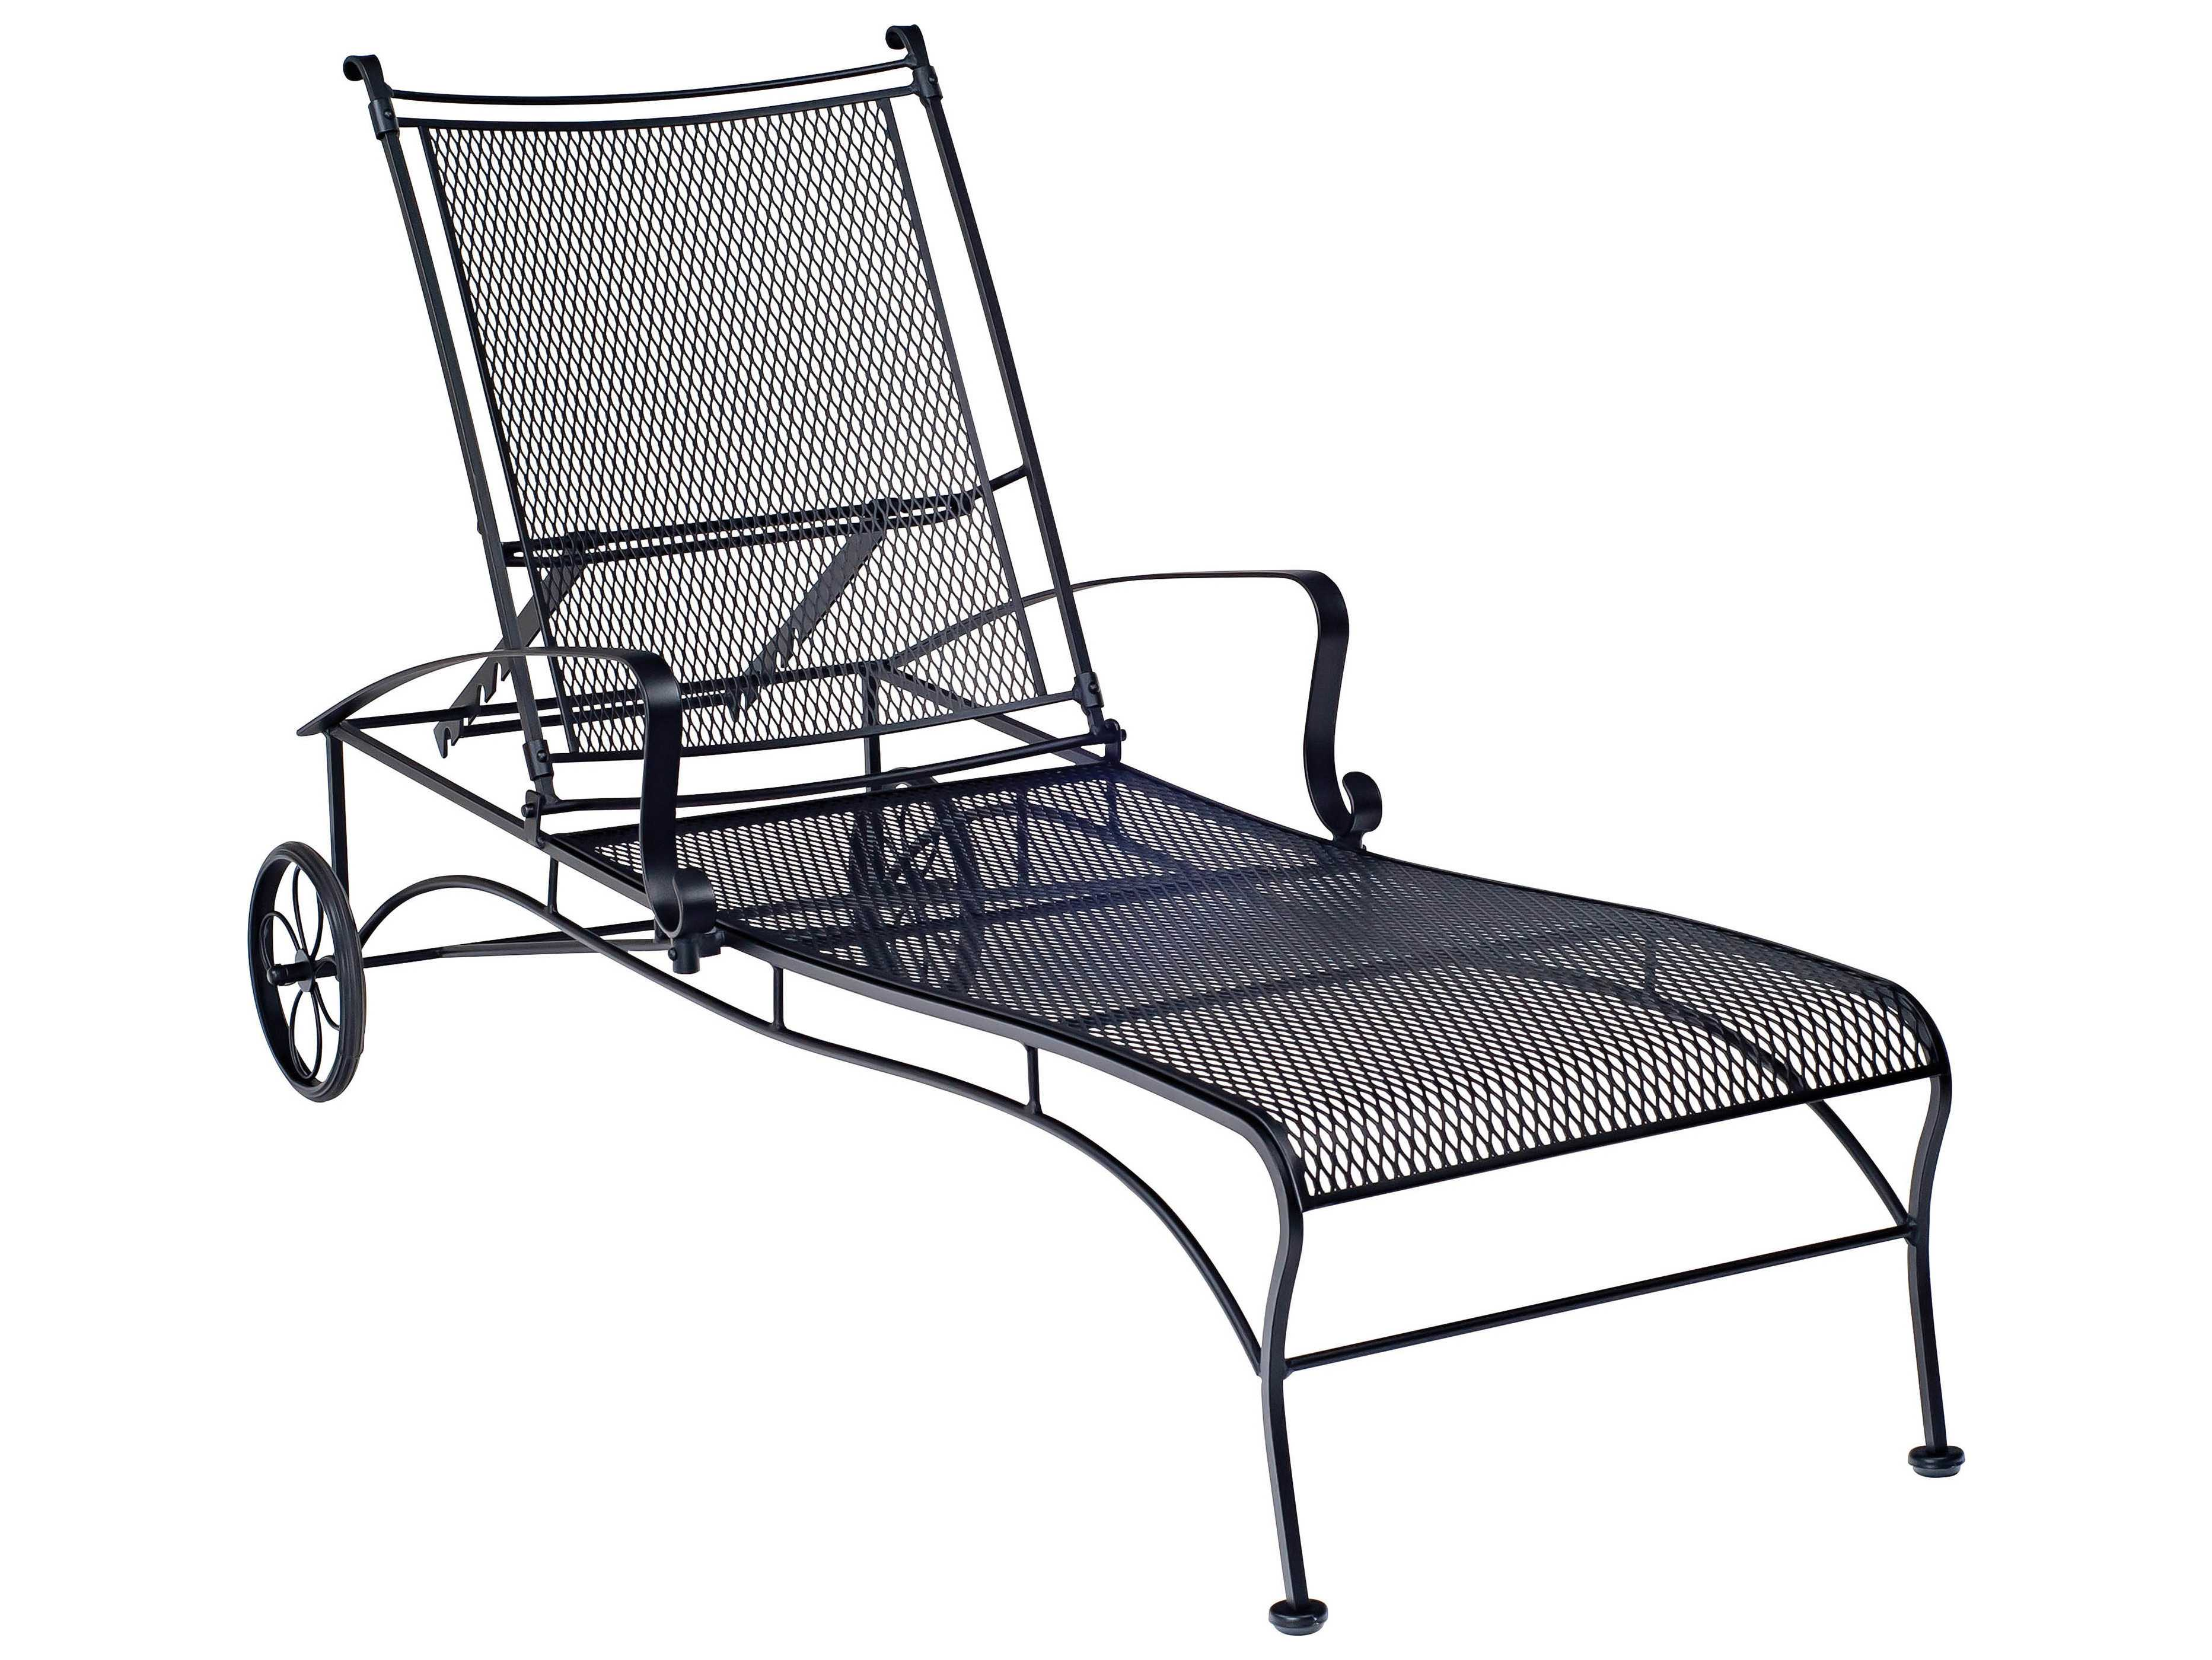 Woodard bradford adjustable chaise 7x0070 for Cast iron chaise lounge